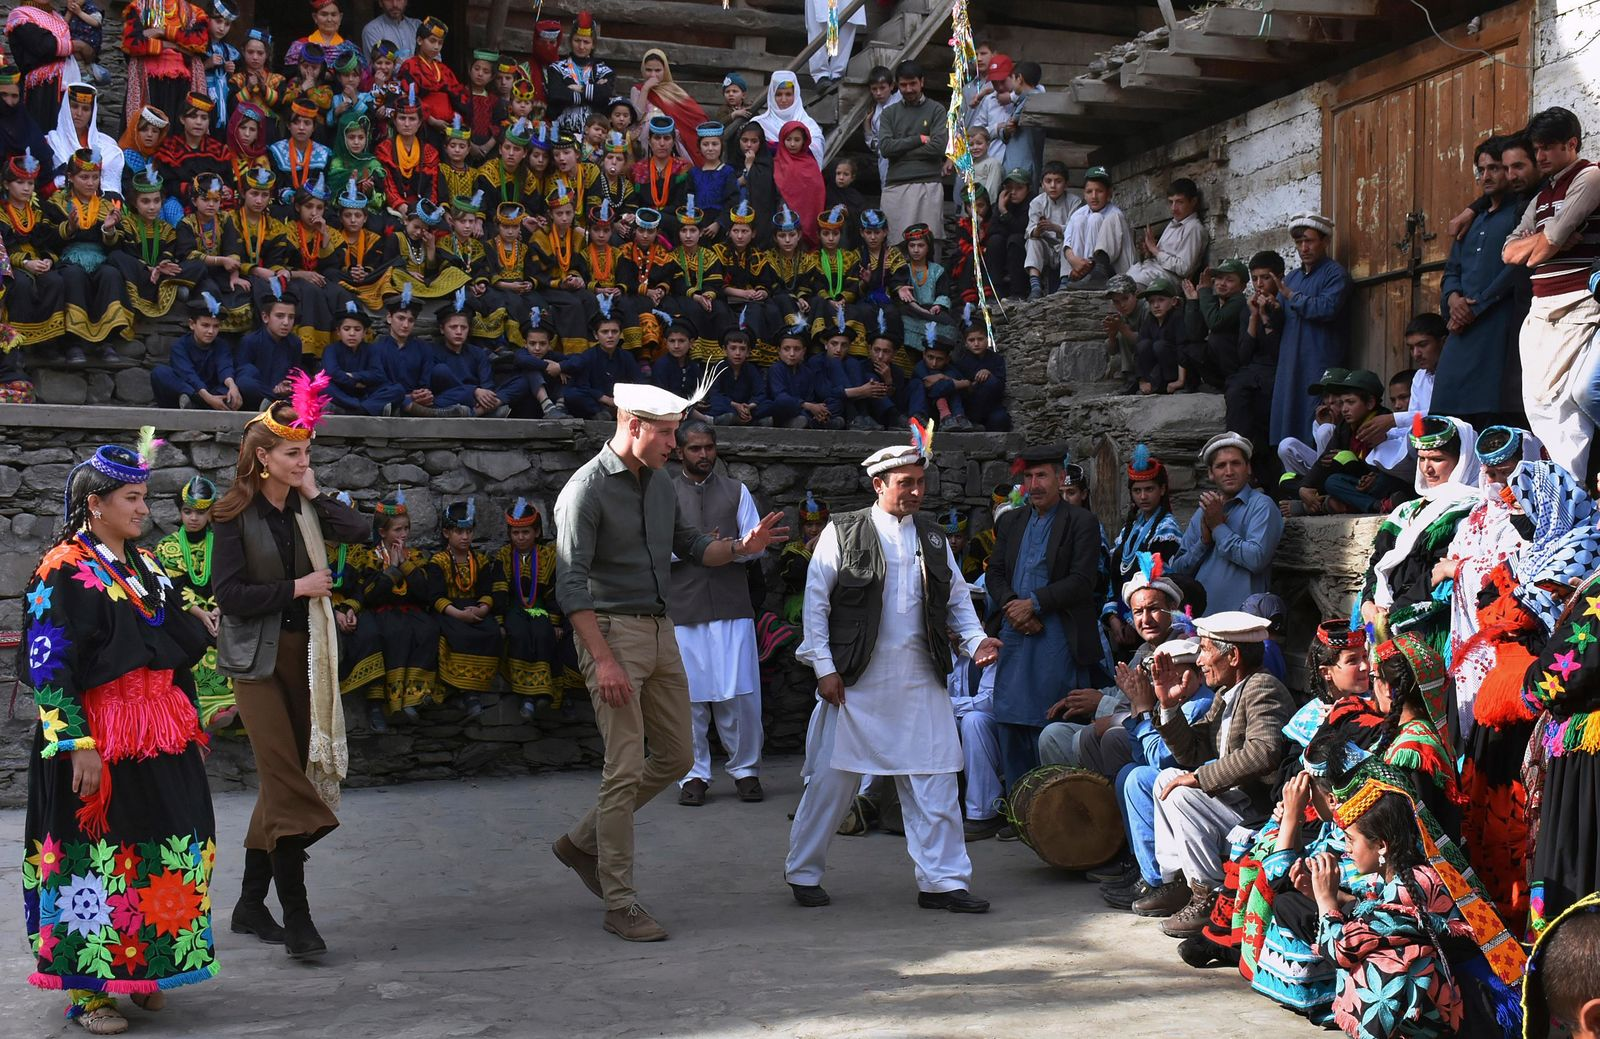 In this photo released by Press Information Department, Britain's Prince William, center, and his wife Kate interact with the members of Kalash community during their visit to Bumburate Valley, an area of Pakistan's northern Chitral district, Wednesday Oct. 16, 2019. (Press Information Department via AP)